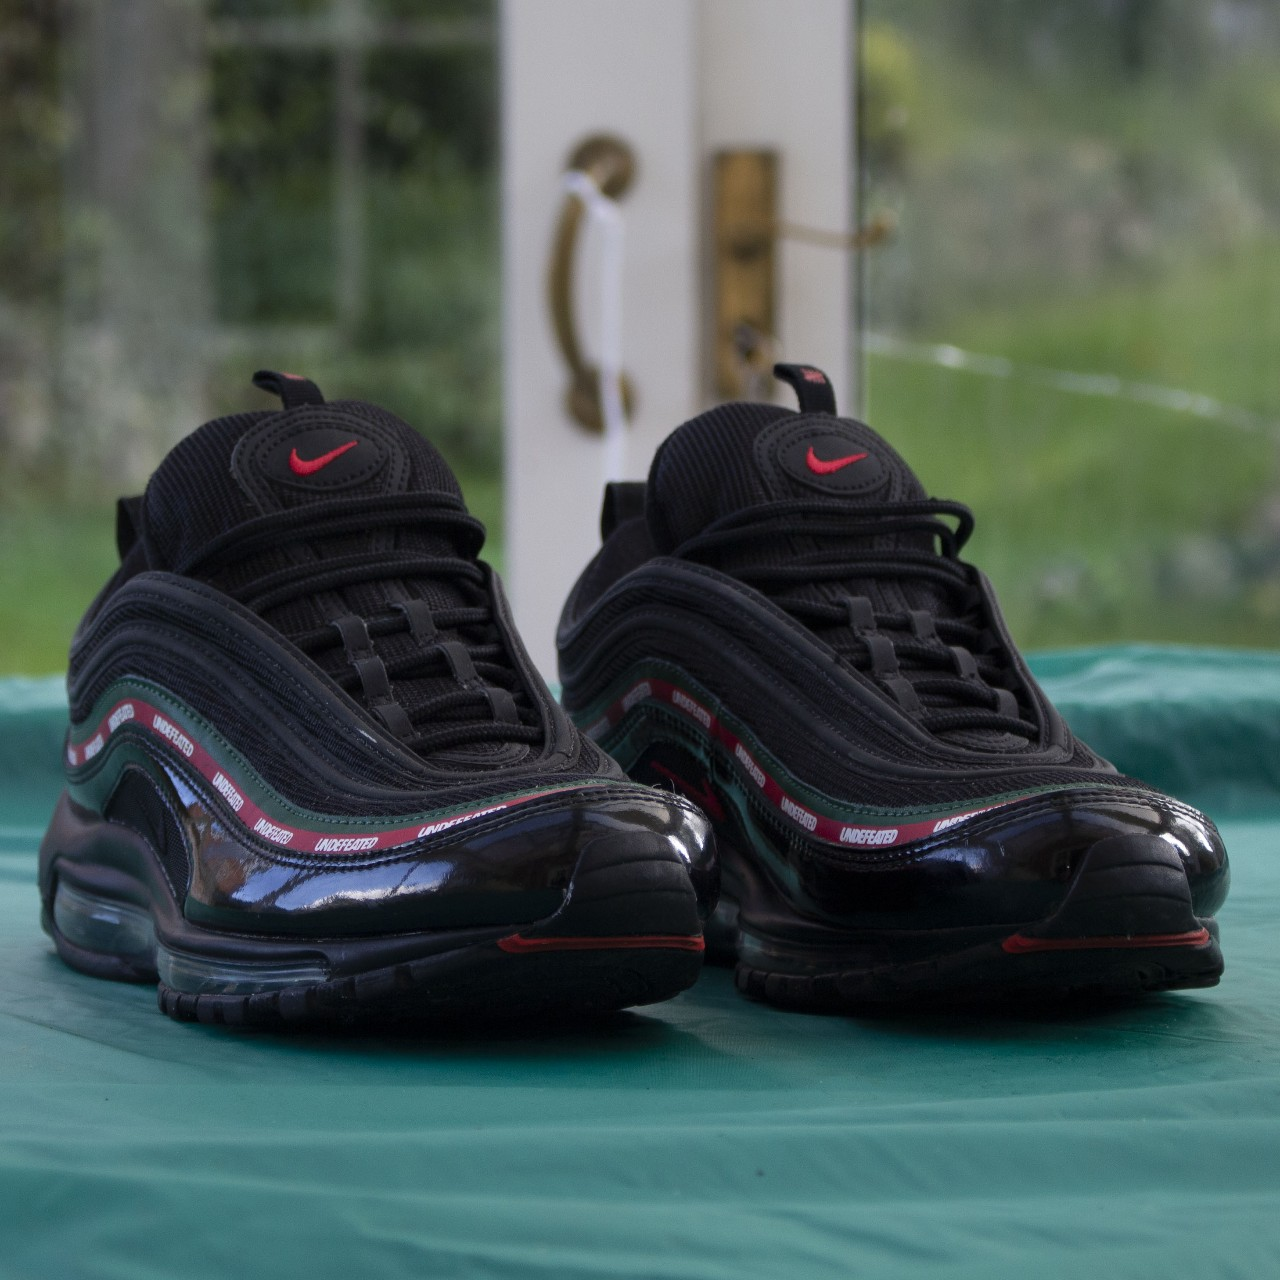 Nike Air Max 97 x UNDFTD Black, UK 10 Genuine Depop